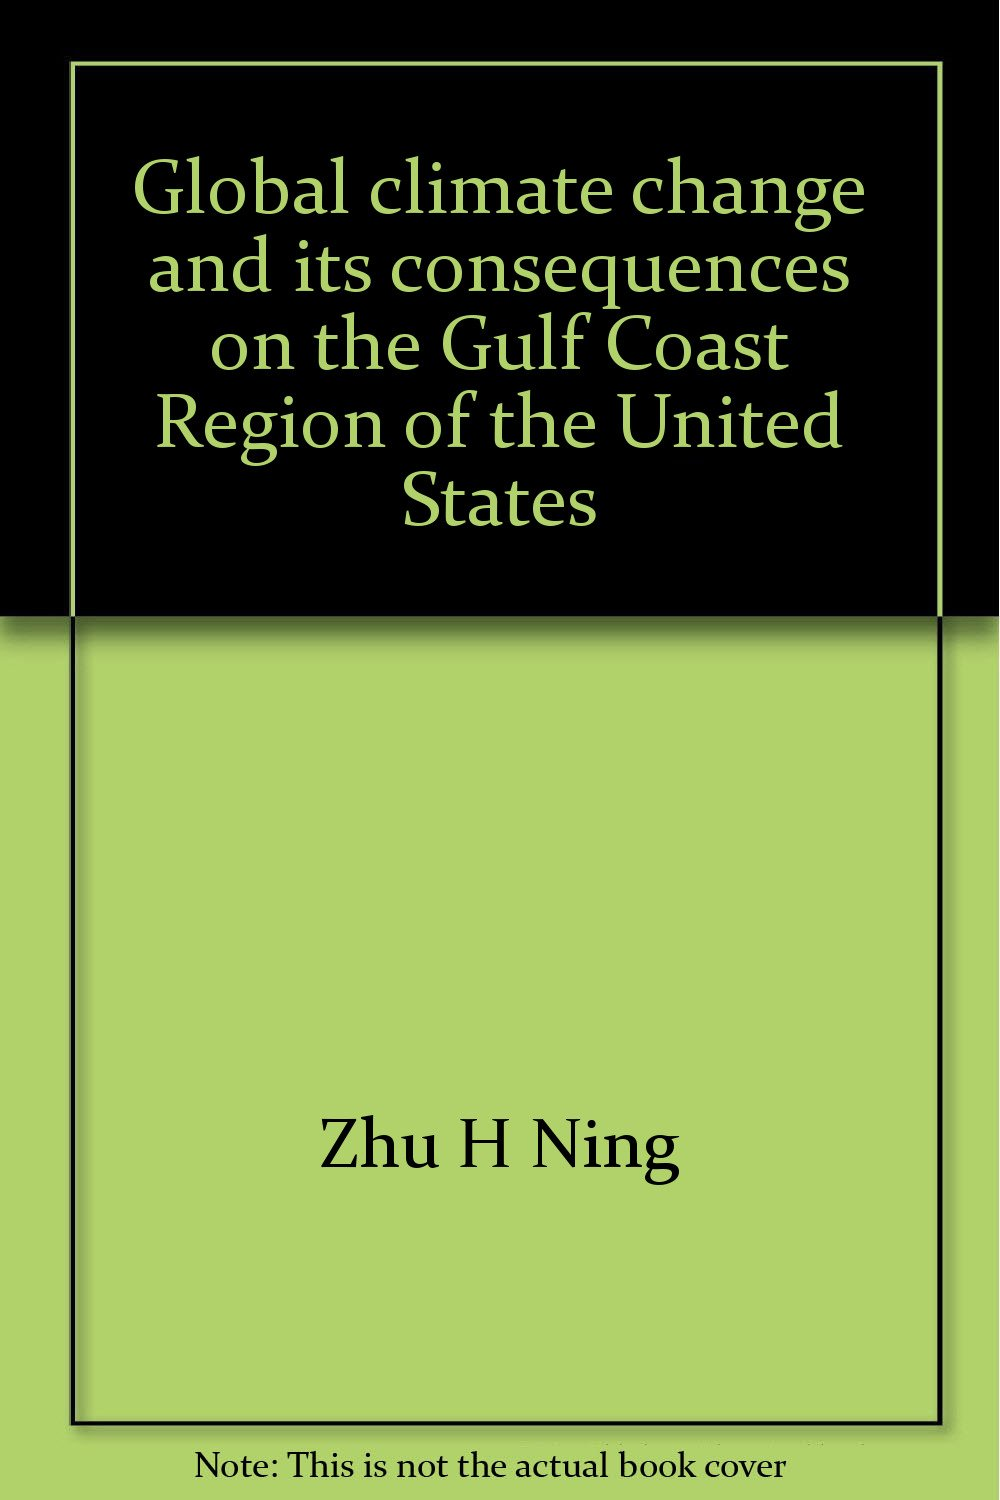 42cd361ed746 Global climate change and its consequences on the Gulf Coast Region ...